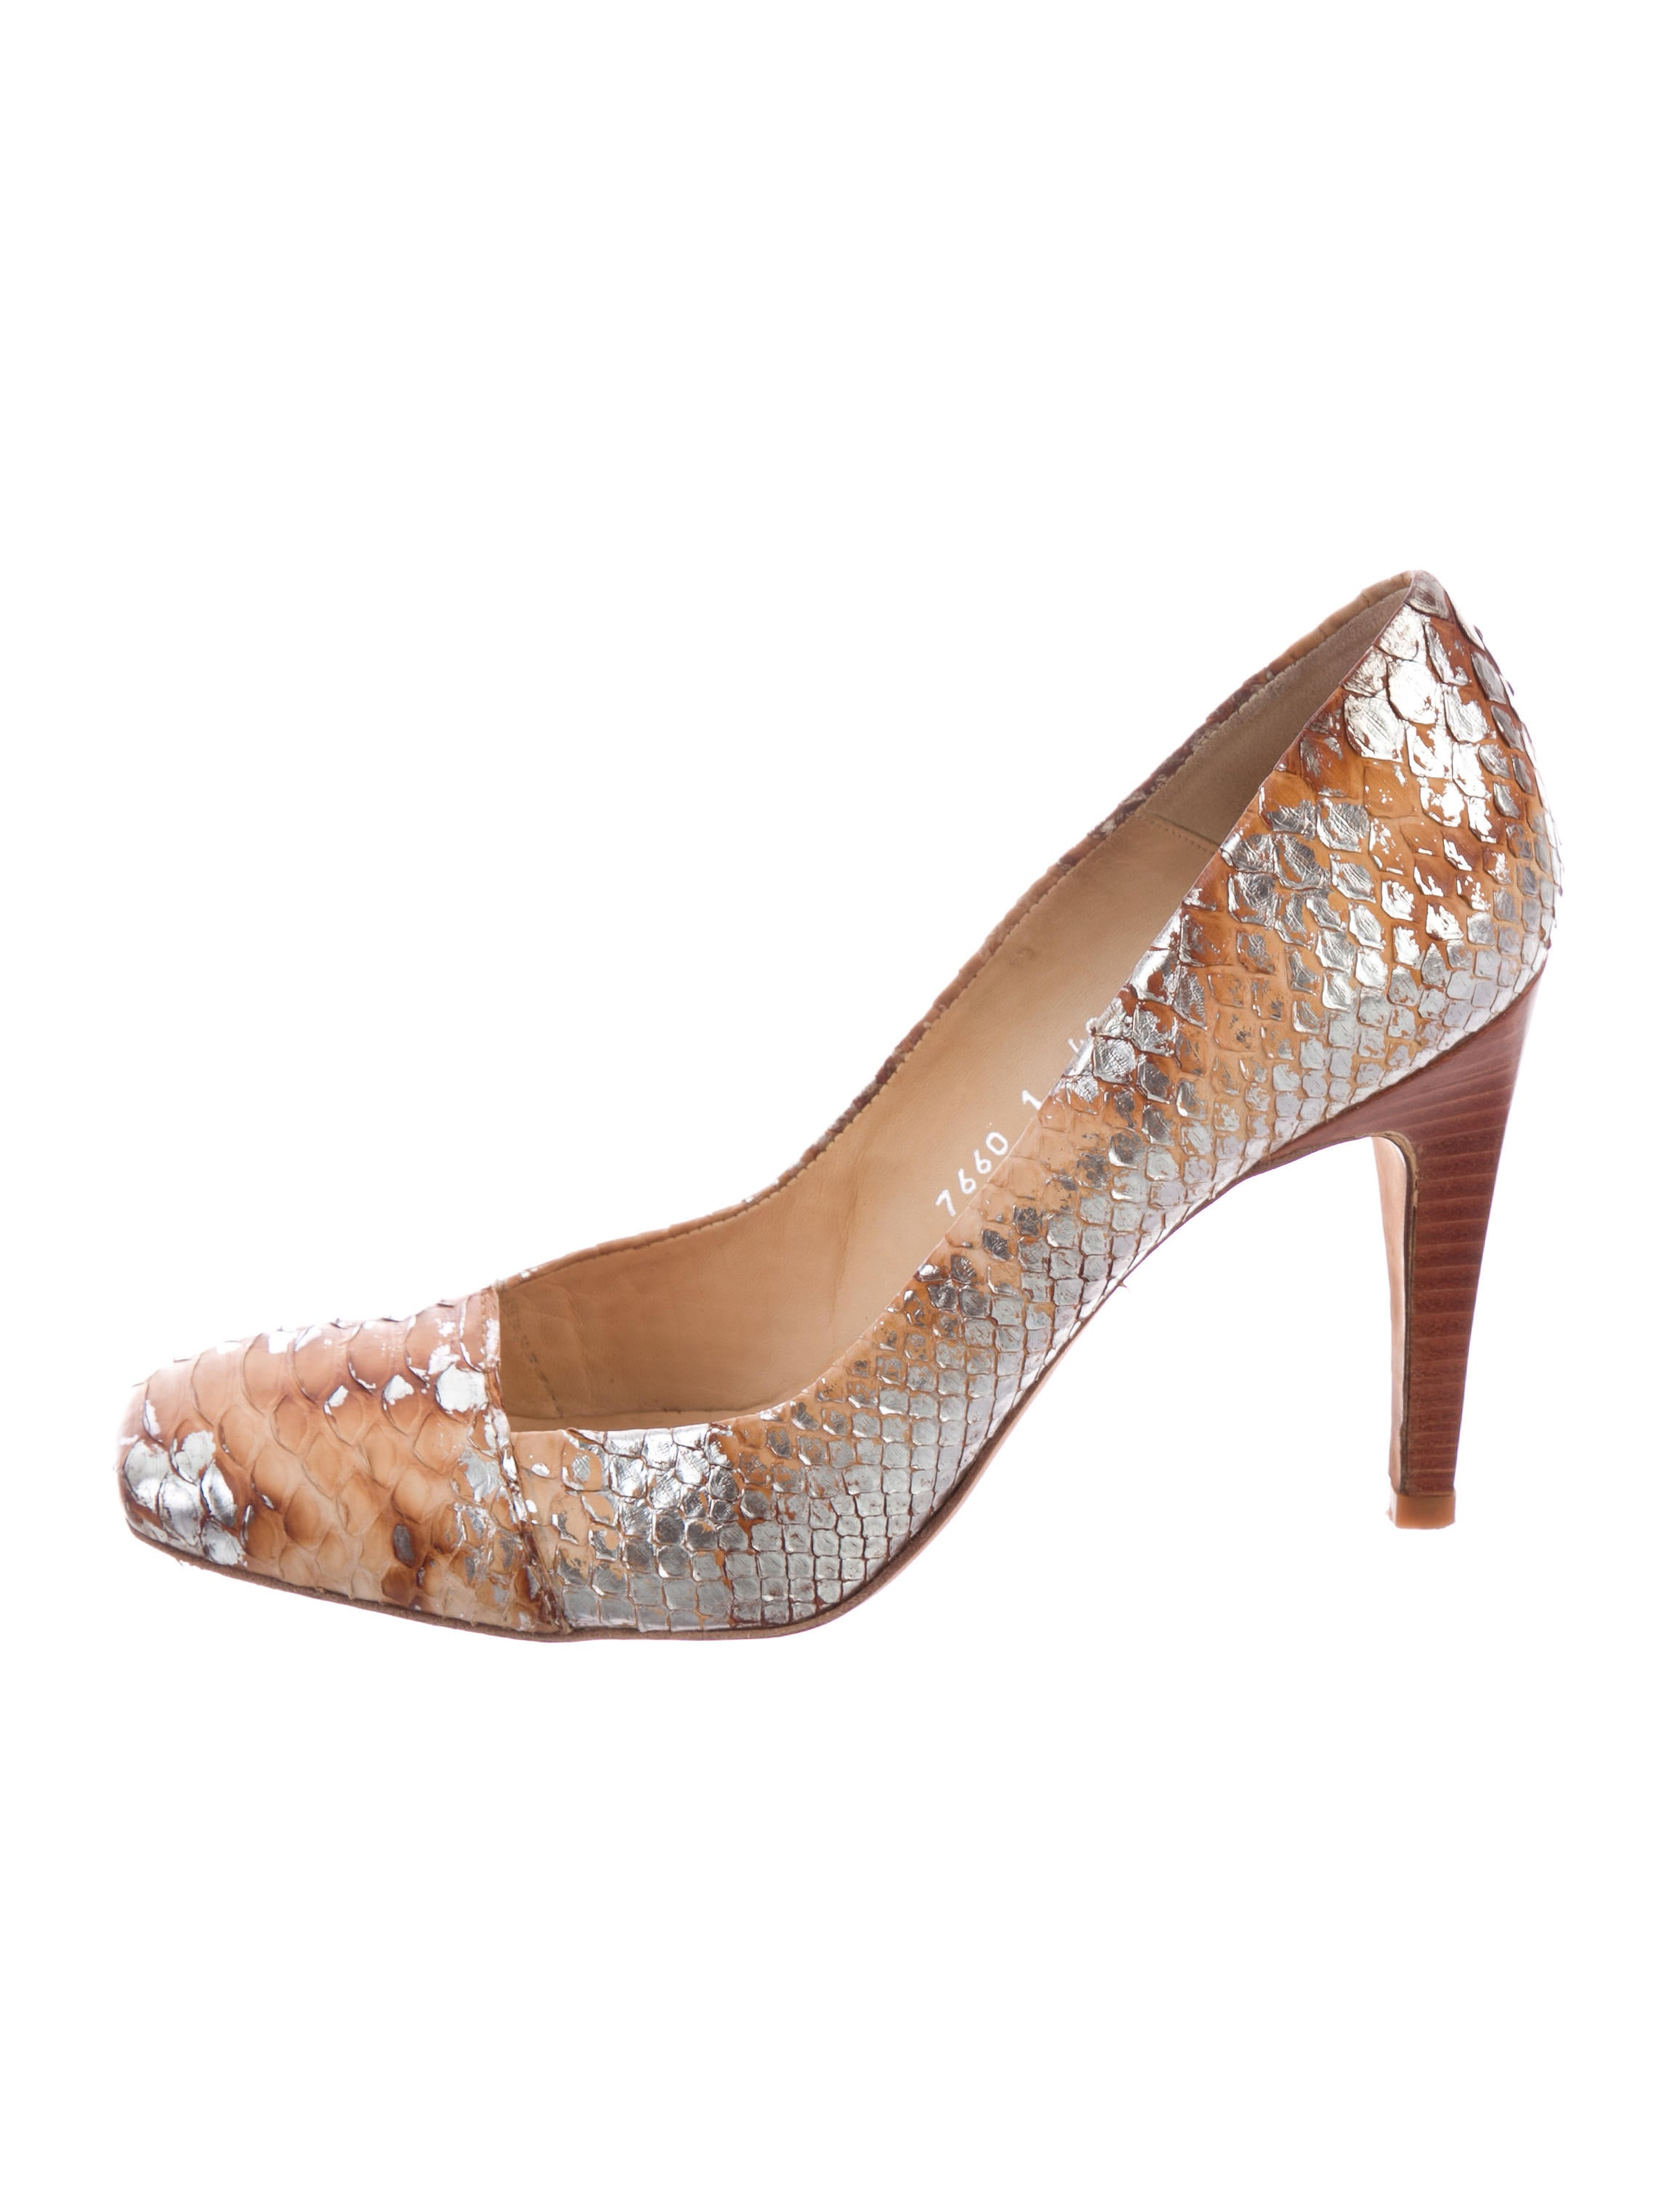 outlet order online Pedro Garcia Linette Python Pumps buy cheap visit new discount reliable cheap sale free shipping 32DmsRJyu